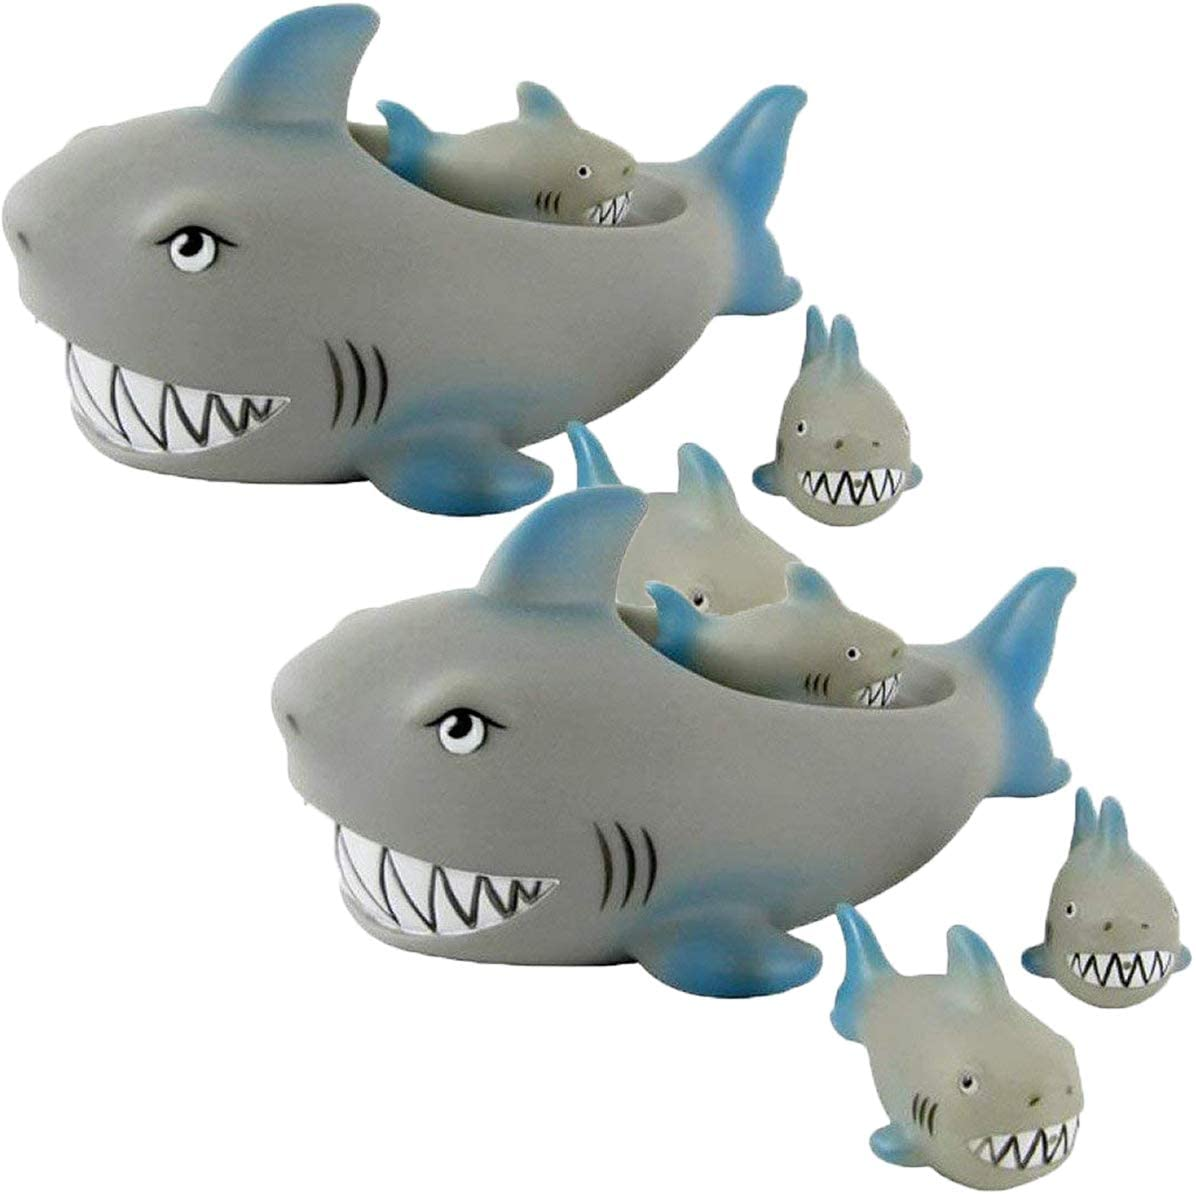 Playmaker Toys Rubber Shark Family Bathtub Pals - Floating Bath Tub Toy (Pack of 2)